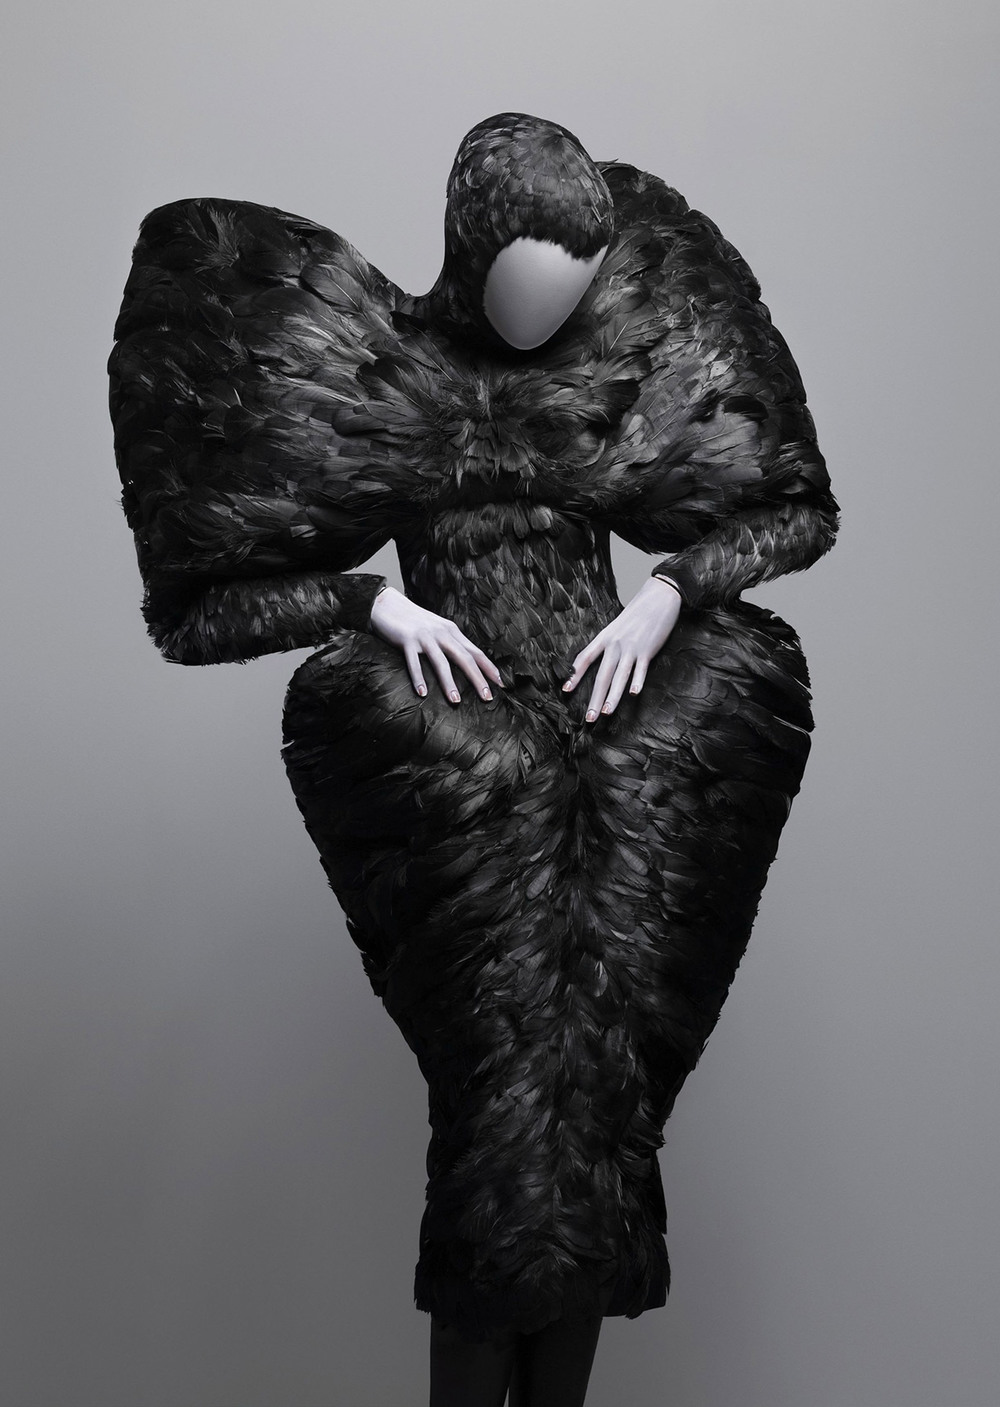 Sybarite-Architects-Alexander-McQueen-Savage-Beauty-V-and-A-Black-Duck-Feathers-A-romantic-and-gothic-mind.jpg